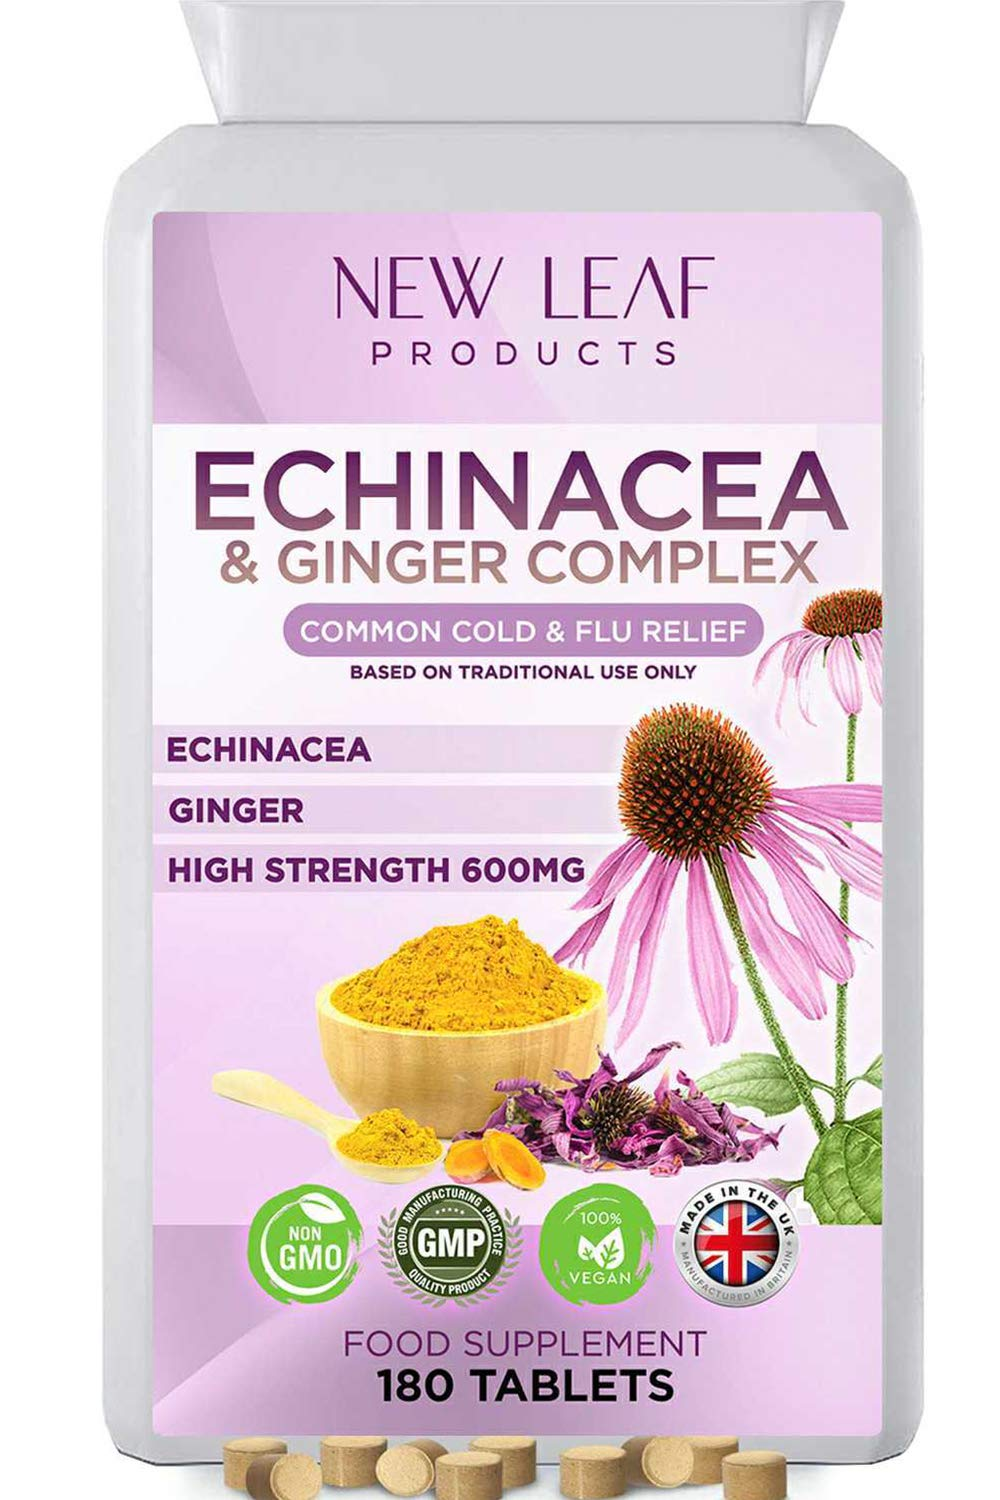 Echinacea Tablets One A Day High Strength 6 Months Supply & Ginger Complex for Soothing Relief - Highly Absorbable & Easy to Swallow - Vegan